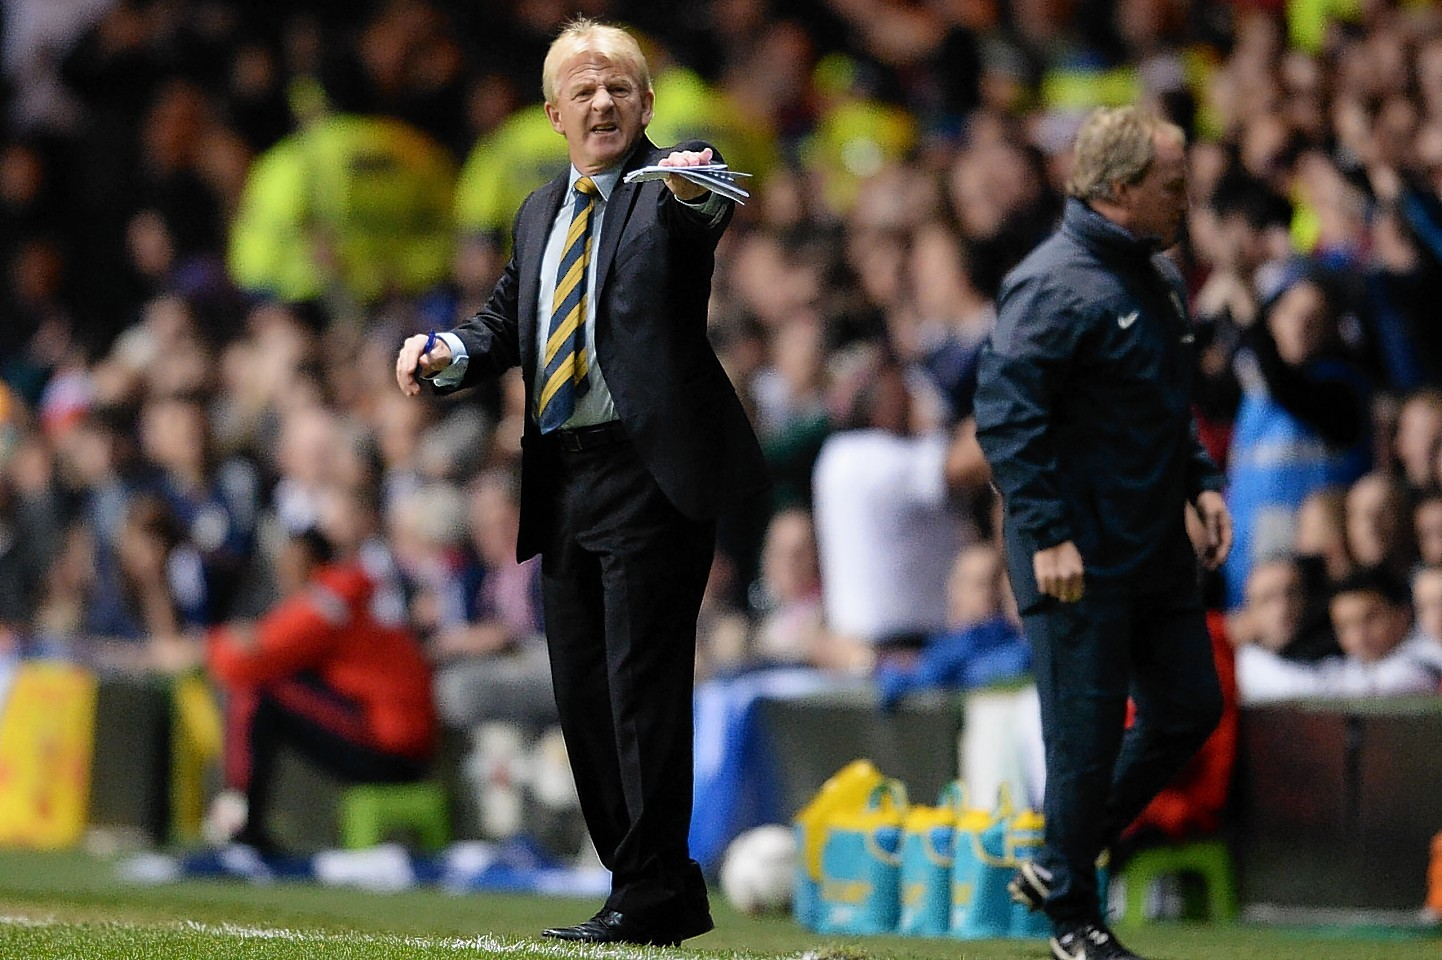 Gordon Strachan will have been disappointed with the lapse in concentration that led to England's third and decisive goal